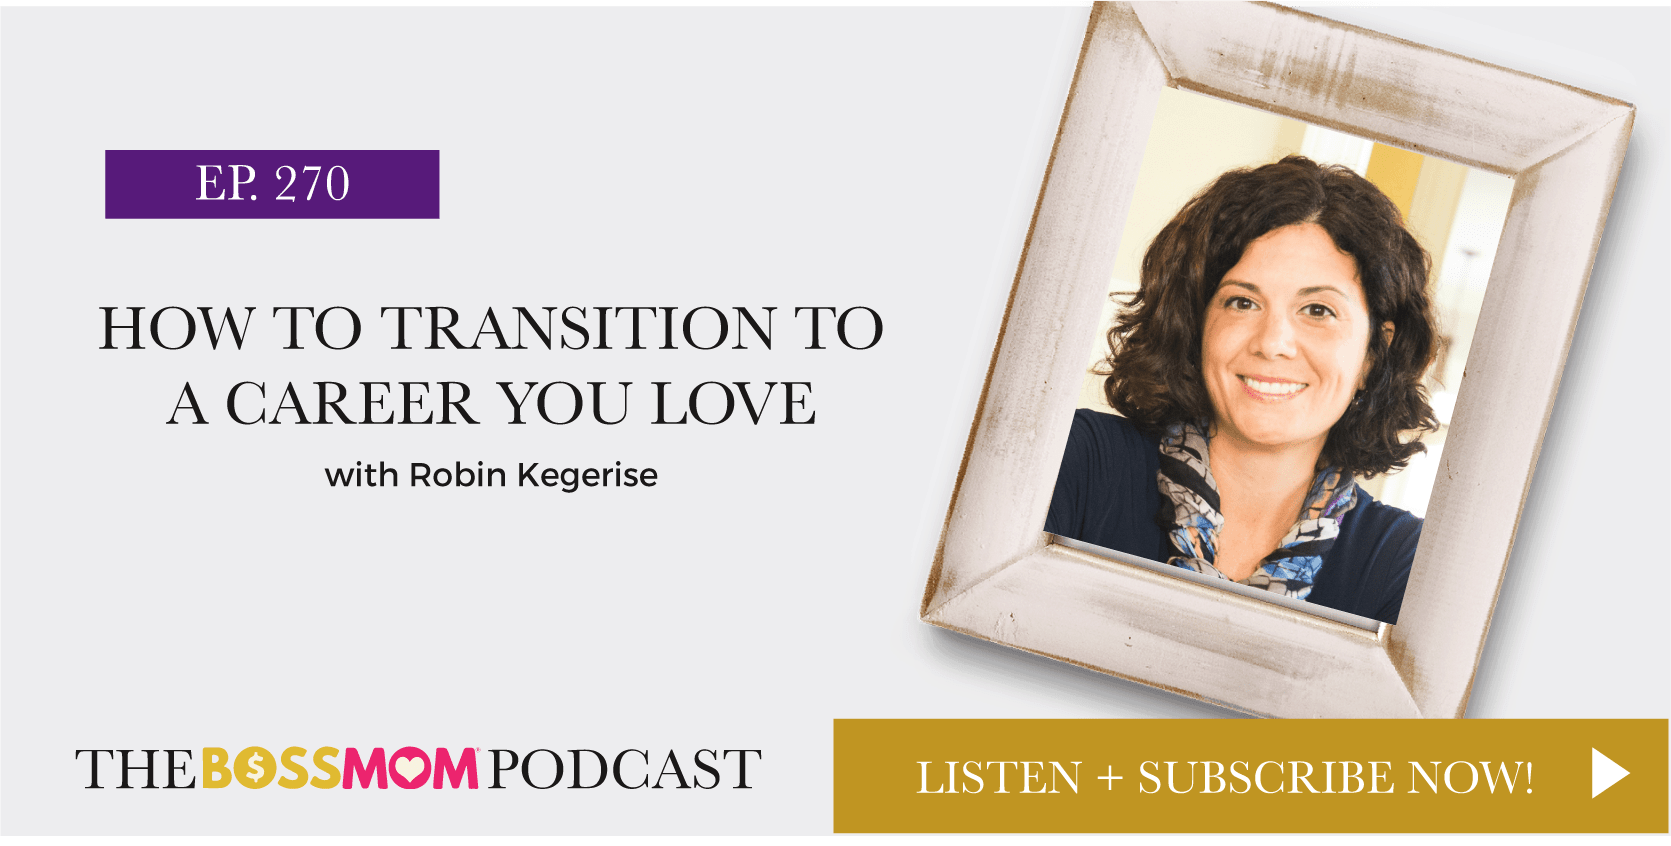 Episode 270: How to Transition into a Career Your Love with Robin Kegerise